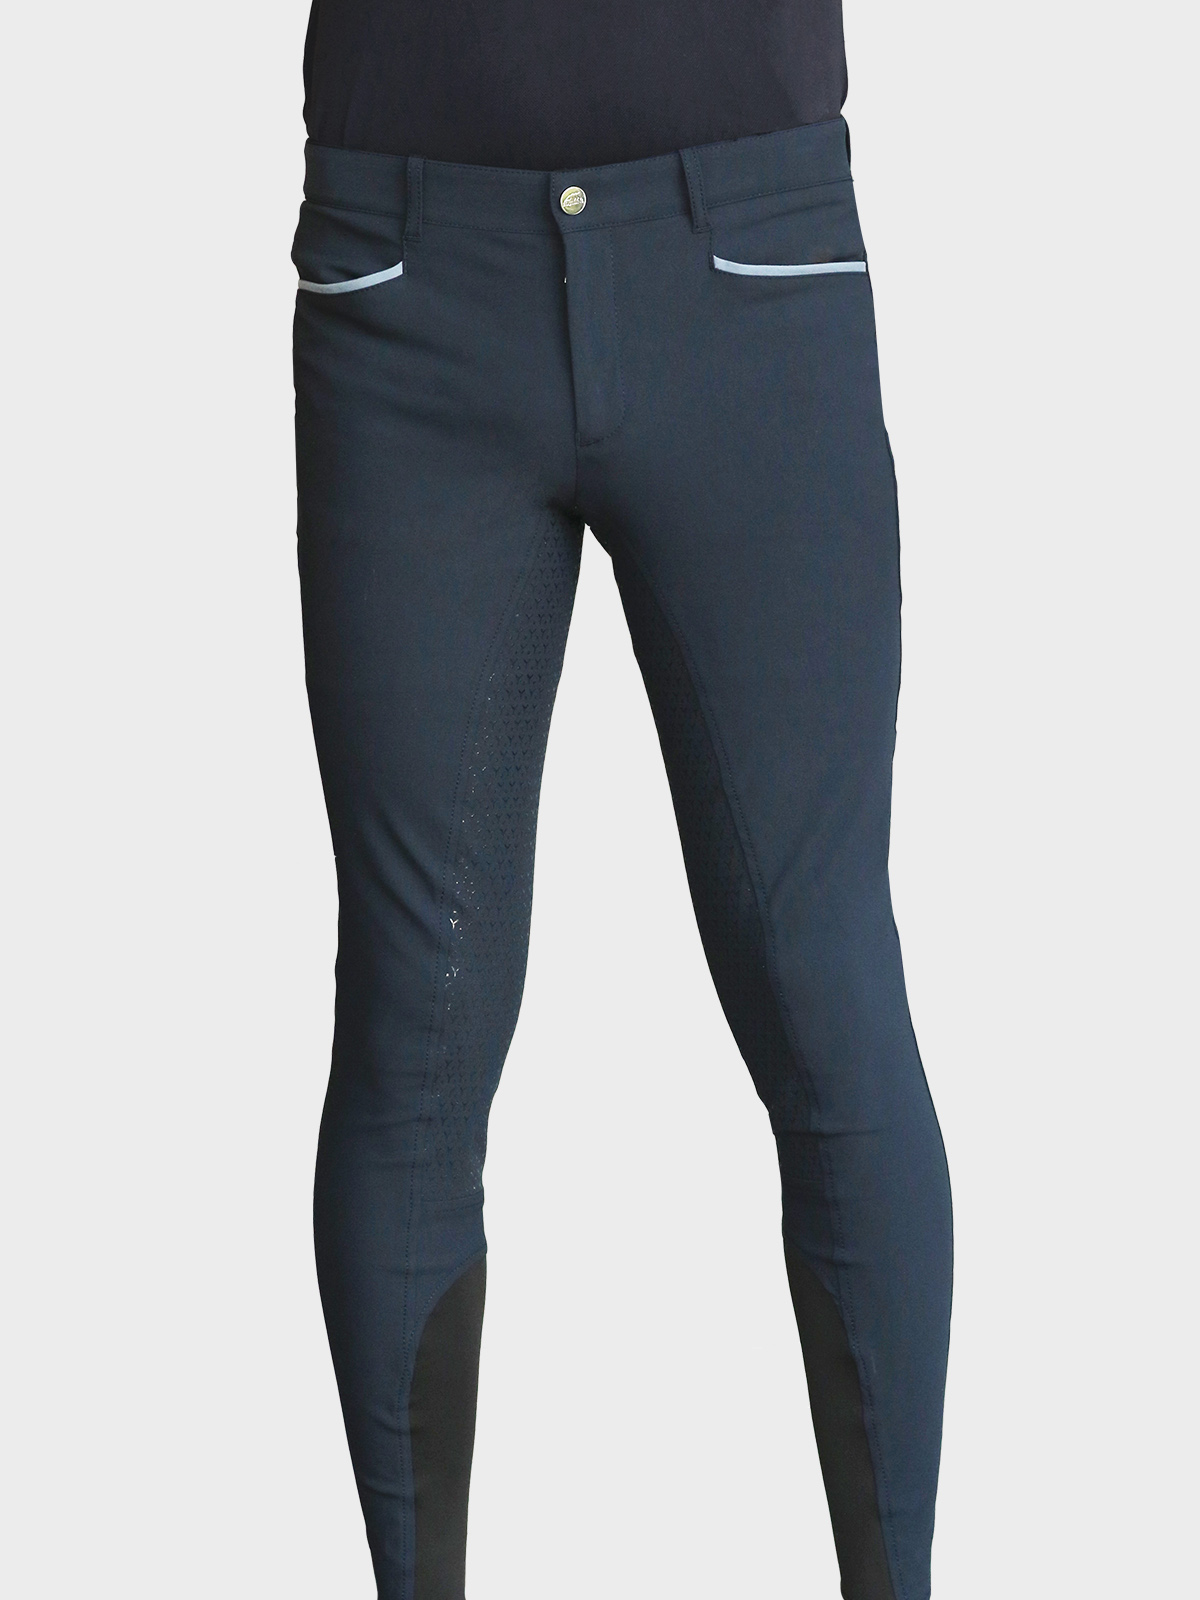 EBER MEN'S FULL GRIP BREECHES 1